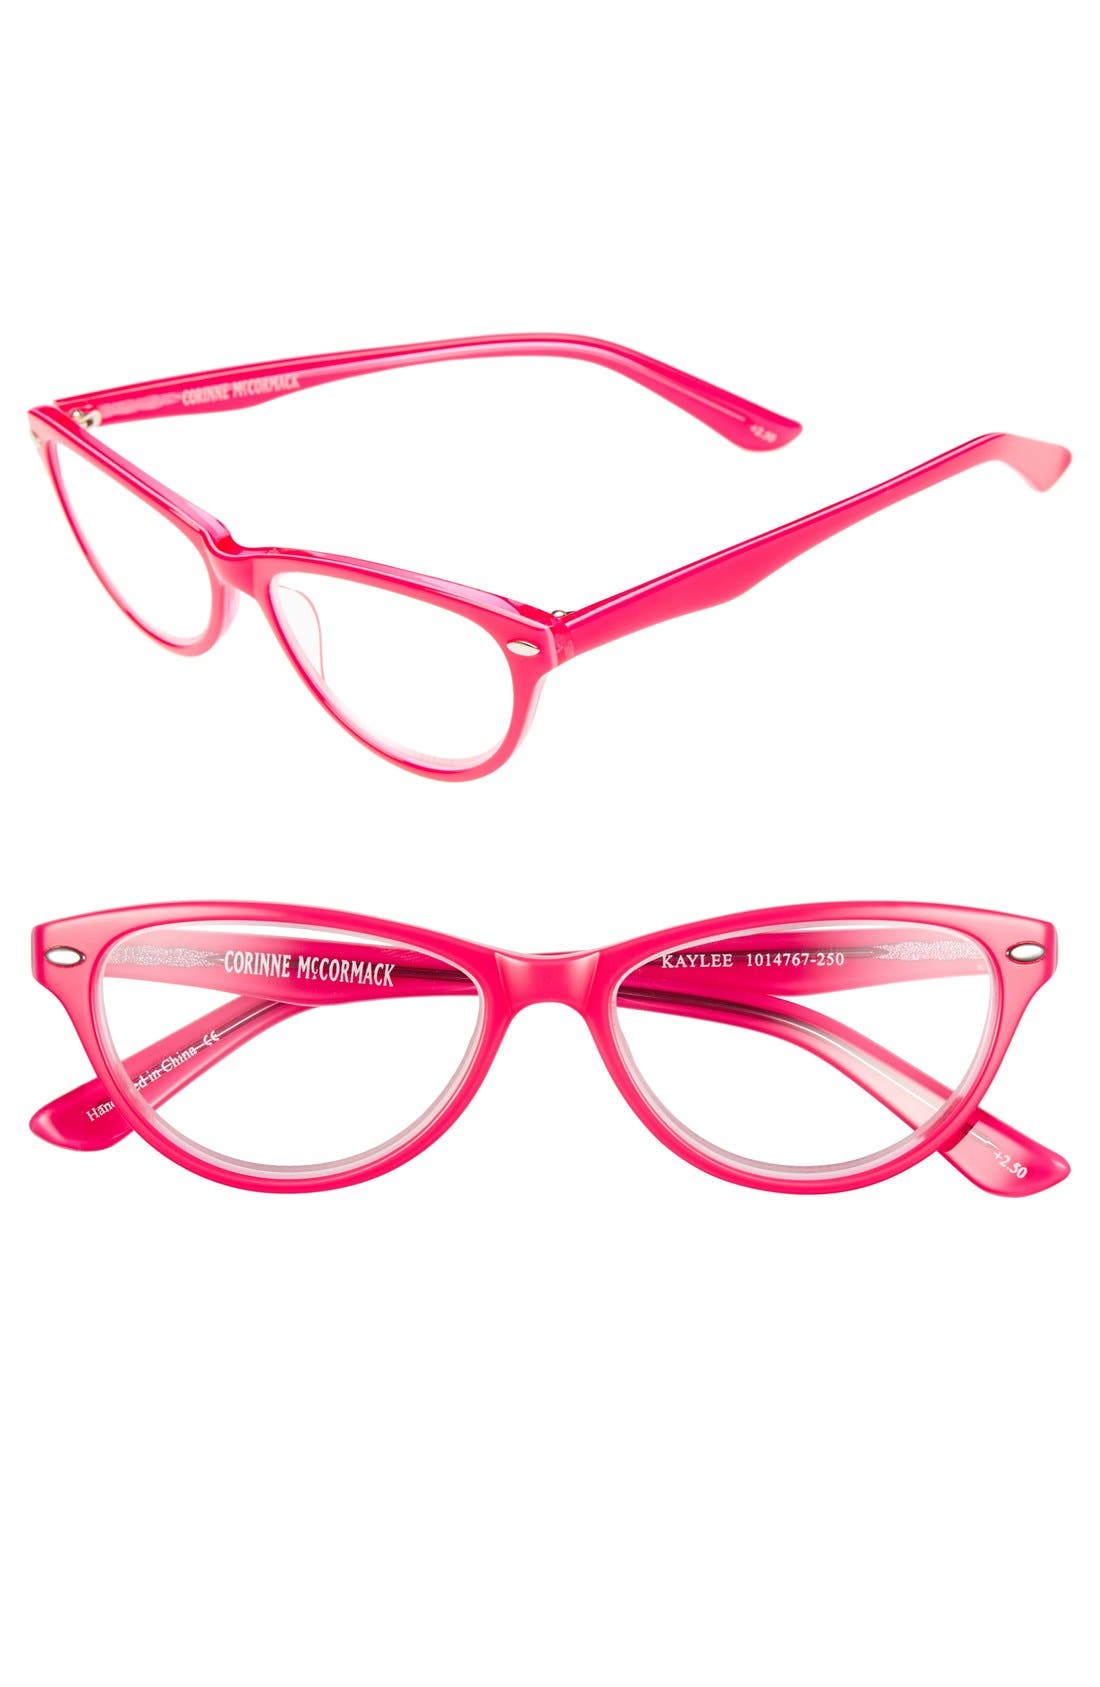 CORINNE MCCORMACK 'Kaylee' Reading Glasses, Main, color, 650